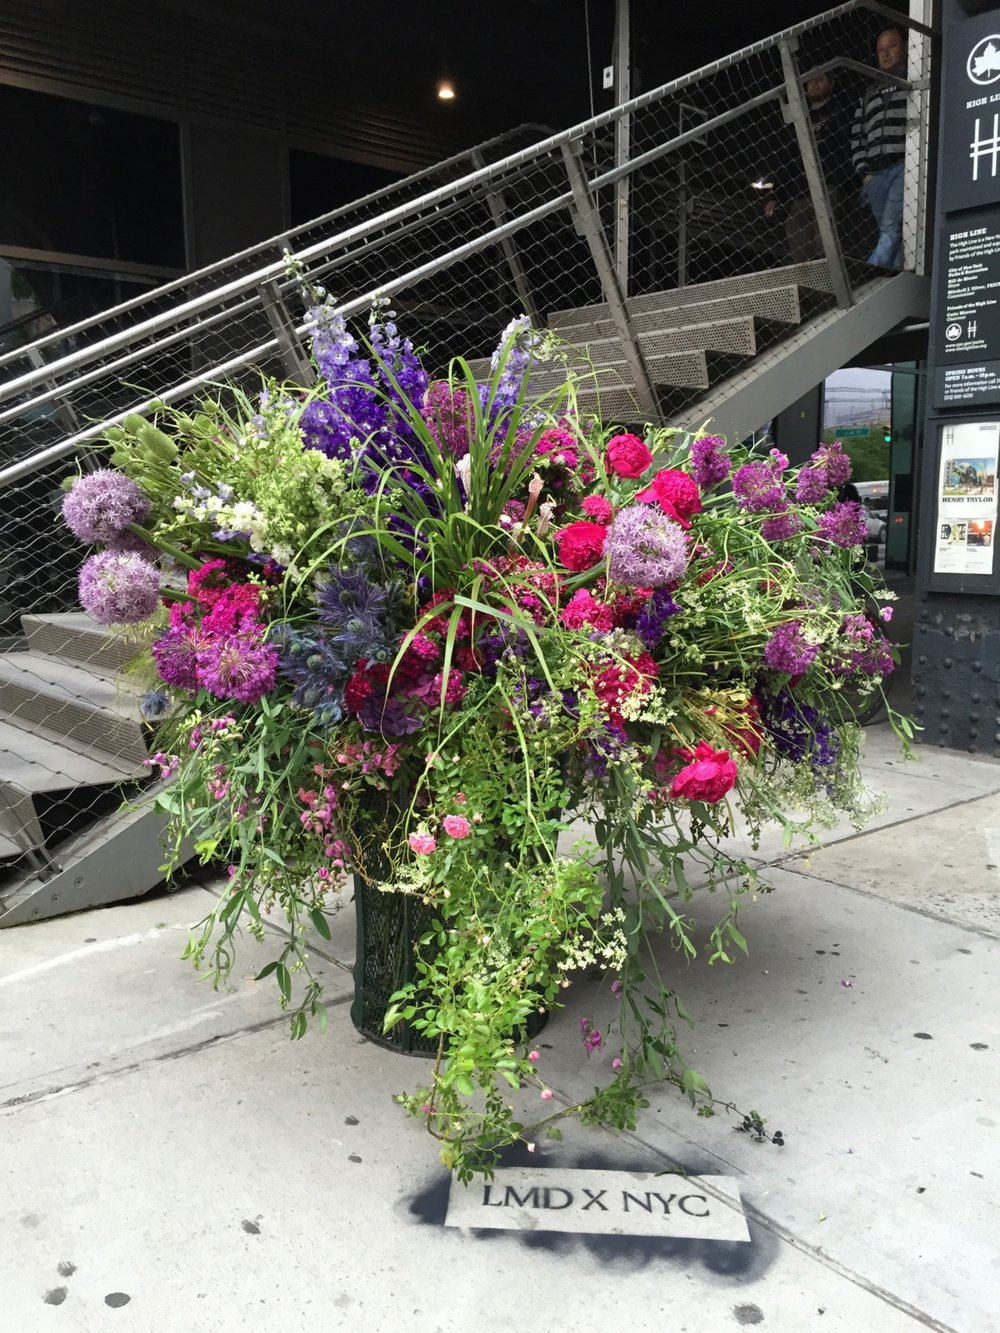 A recent Lewis Miller Flower Flash project was a trash bin at the base of the Highline in the Meatpacking District. Miller leaves his initials in chalk to mark the spot.